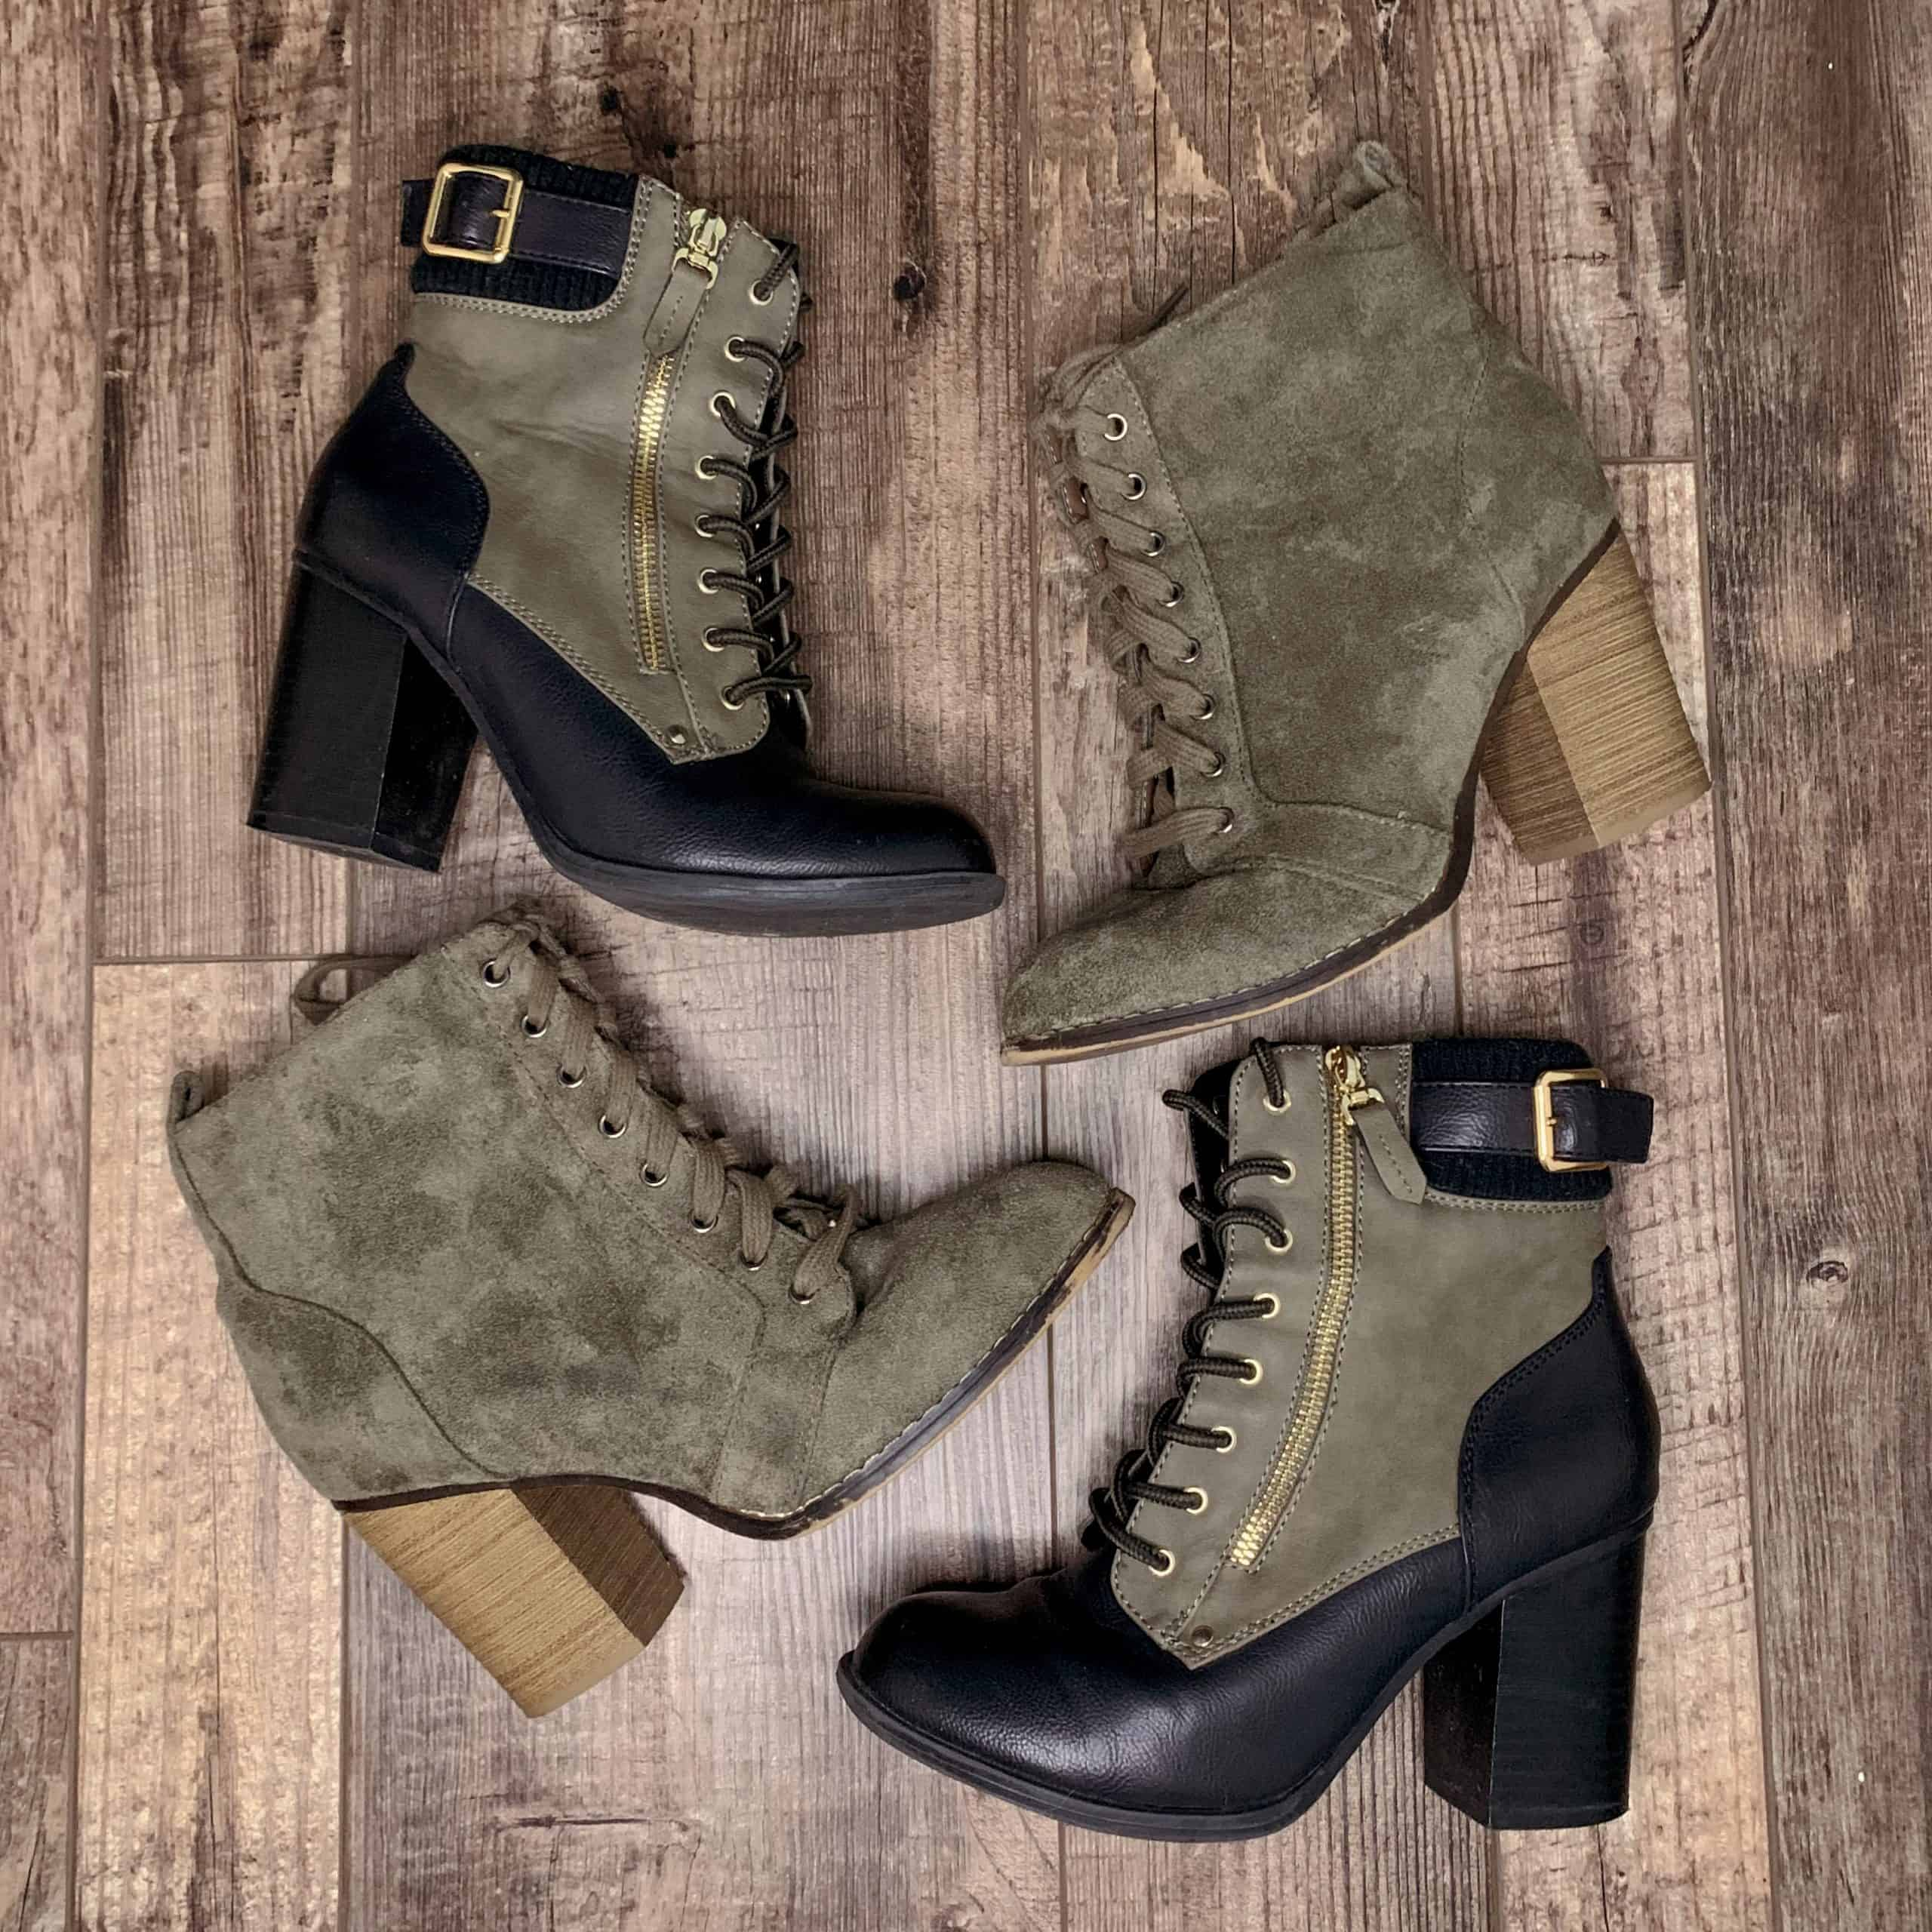 Accent Boots For Cheap And Cute Boots For Women Under $100